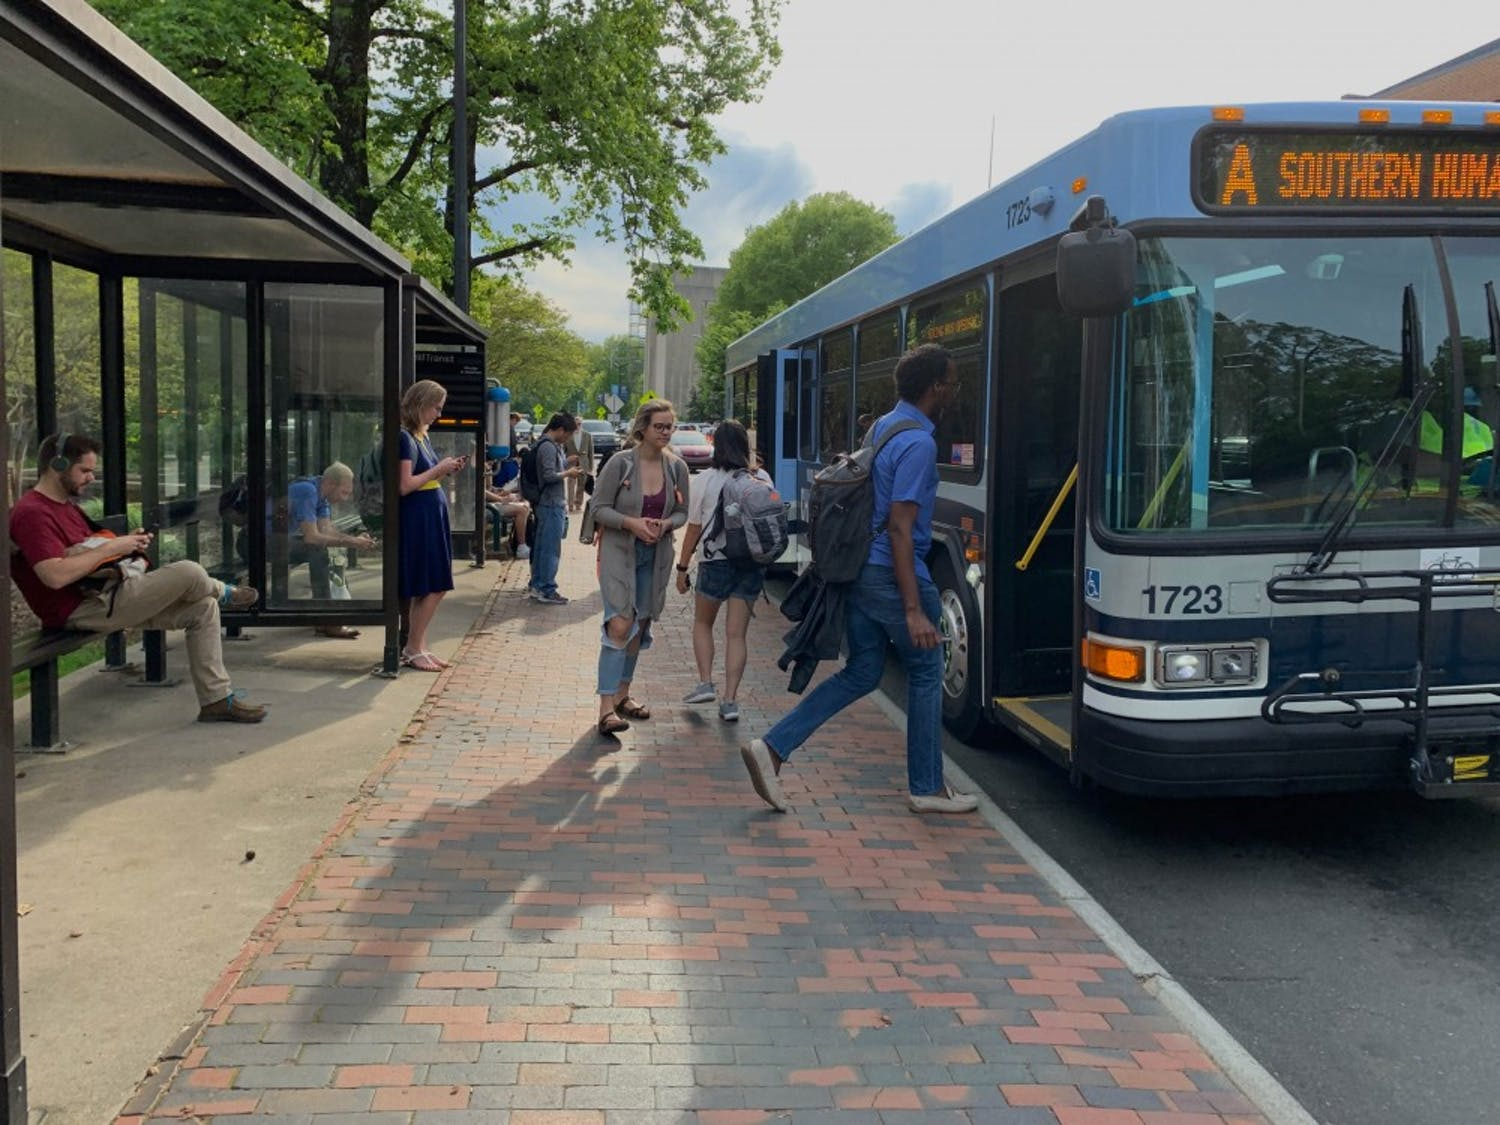 The South Road bus stop across from the Carolina Student Union services multitudes of students and Triangle residents everyday.